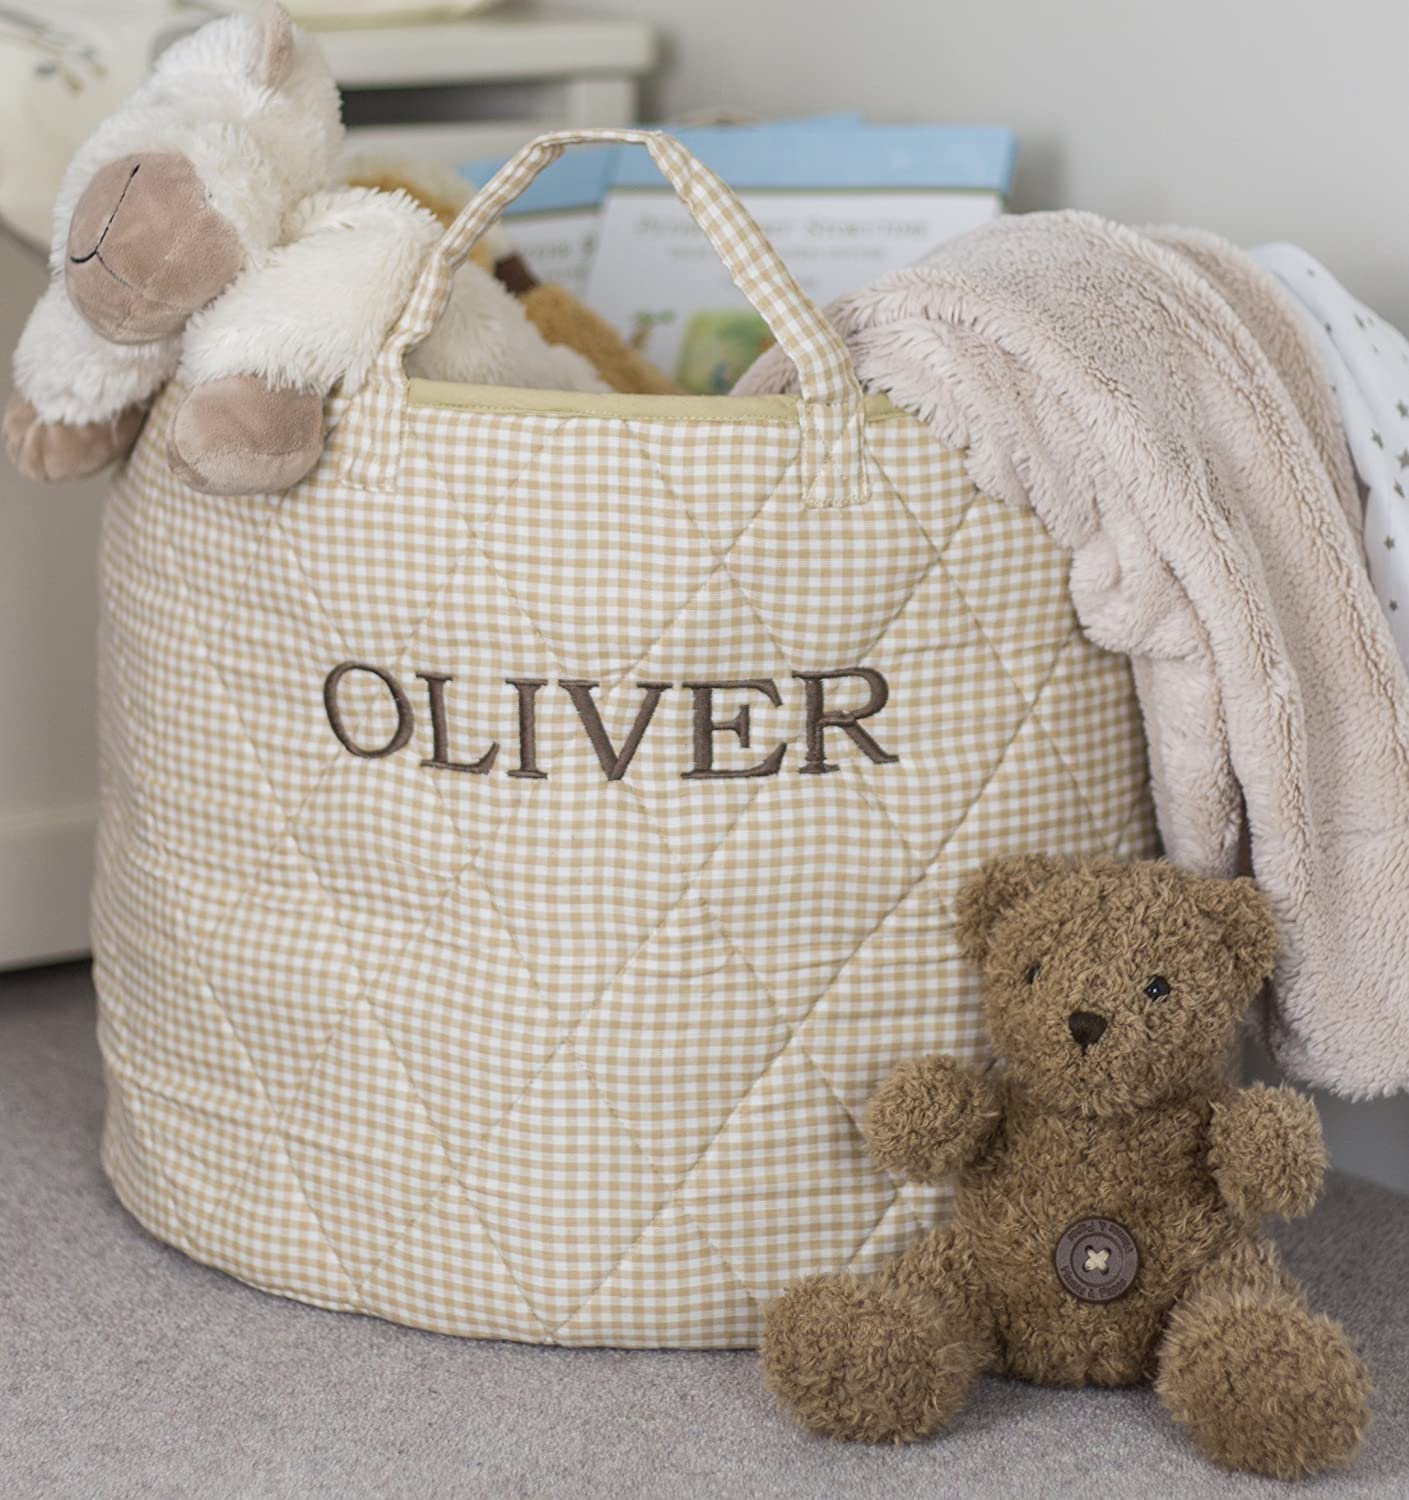 Personalised Simply Storage Quilted Storage Basket Large - Personalised text is Embroidered on these storage baskets, round storage basket, large fabric storage baskets - great for toy storage, kids storage and as a laundry hamper